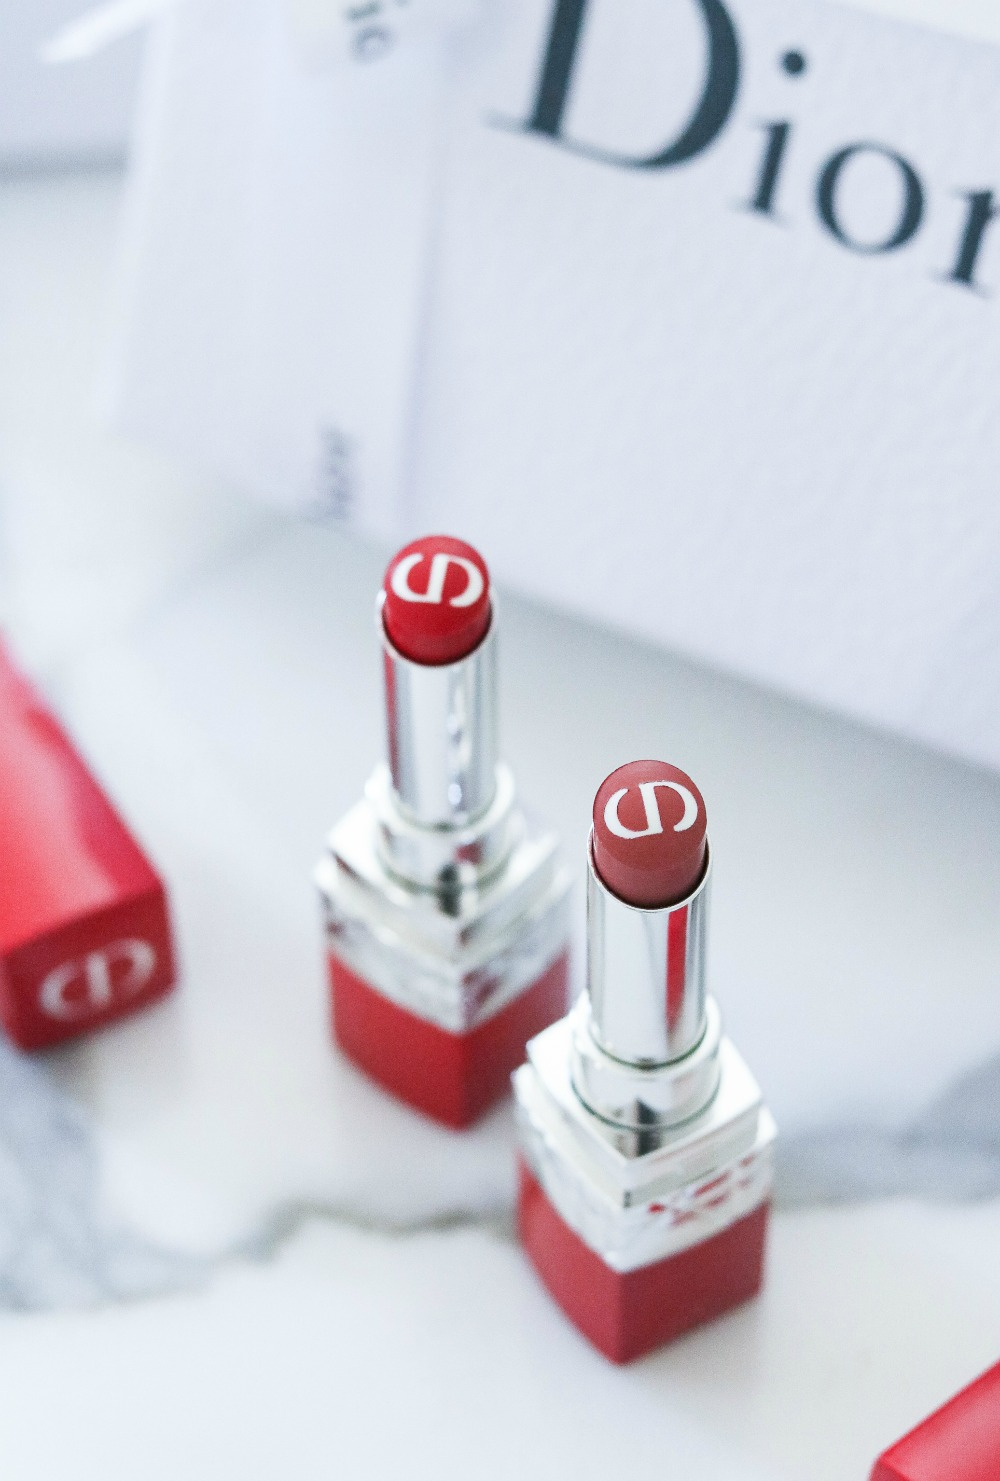 Dior Ultra Care Lipsticks I Luxury Makeup Blog DreaminLace.com #Dior #Makeup